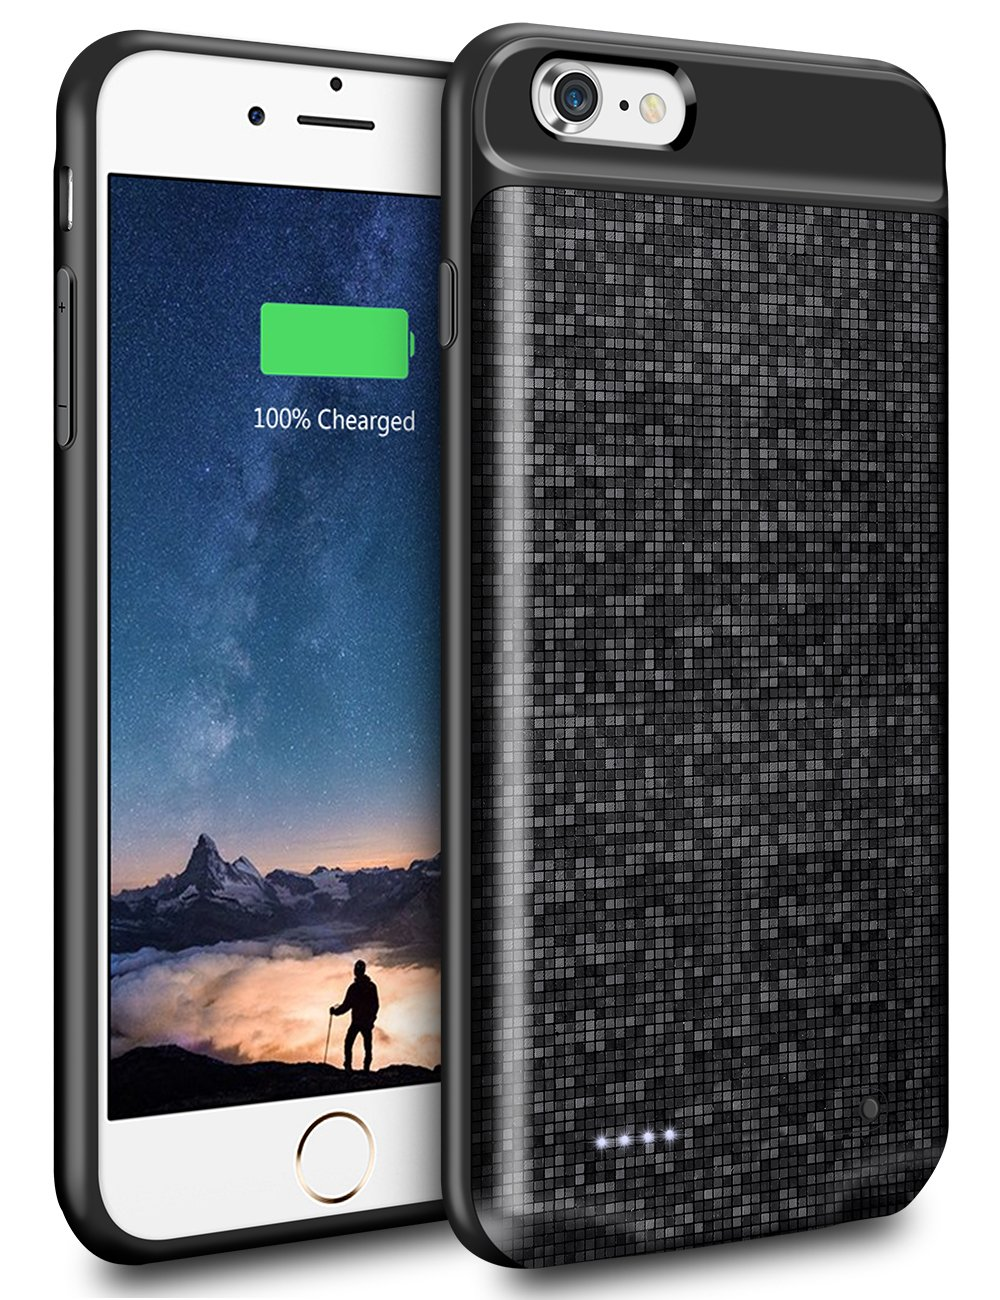 XNMOA iPhone 6S Plus Battery Case 4200mAh Portable Power Bank iPhone 6 Plus Charger Case Cover Shockproof Protective Rechargeable External Battery Case Slim for Apple iPhone 6s Plus/6 Plus -Black